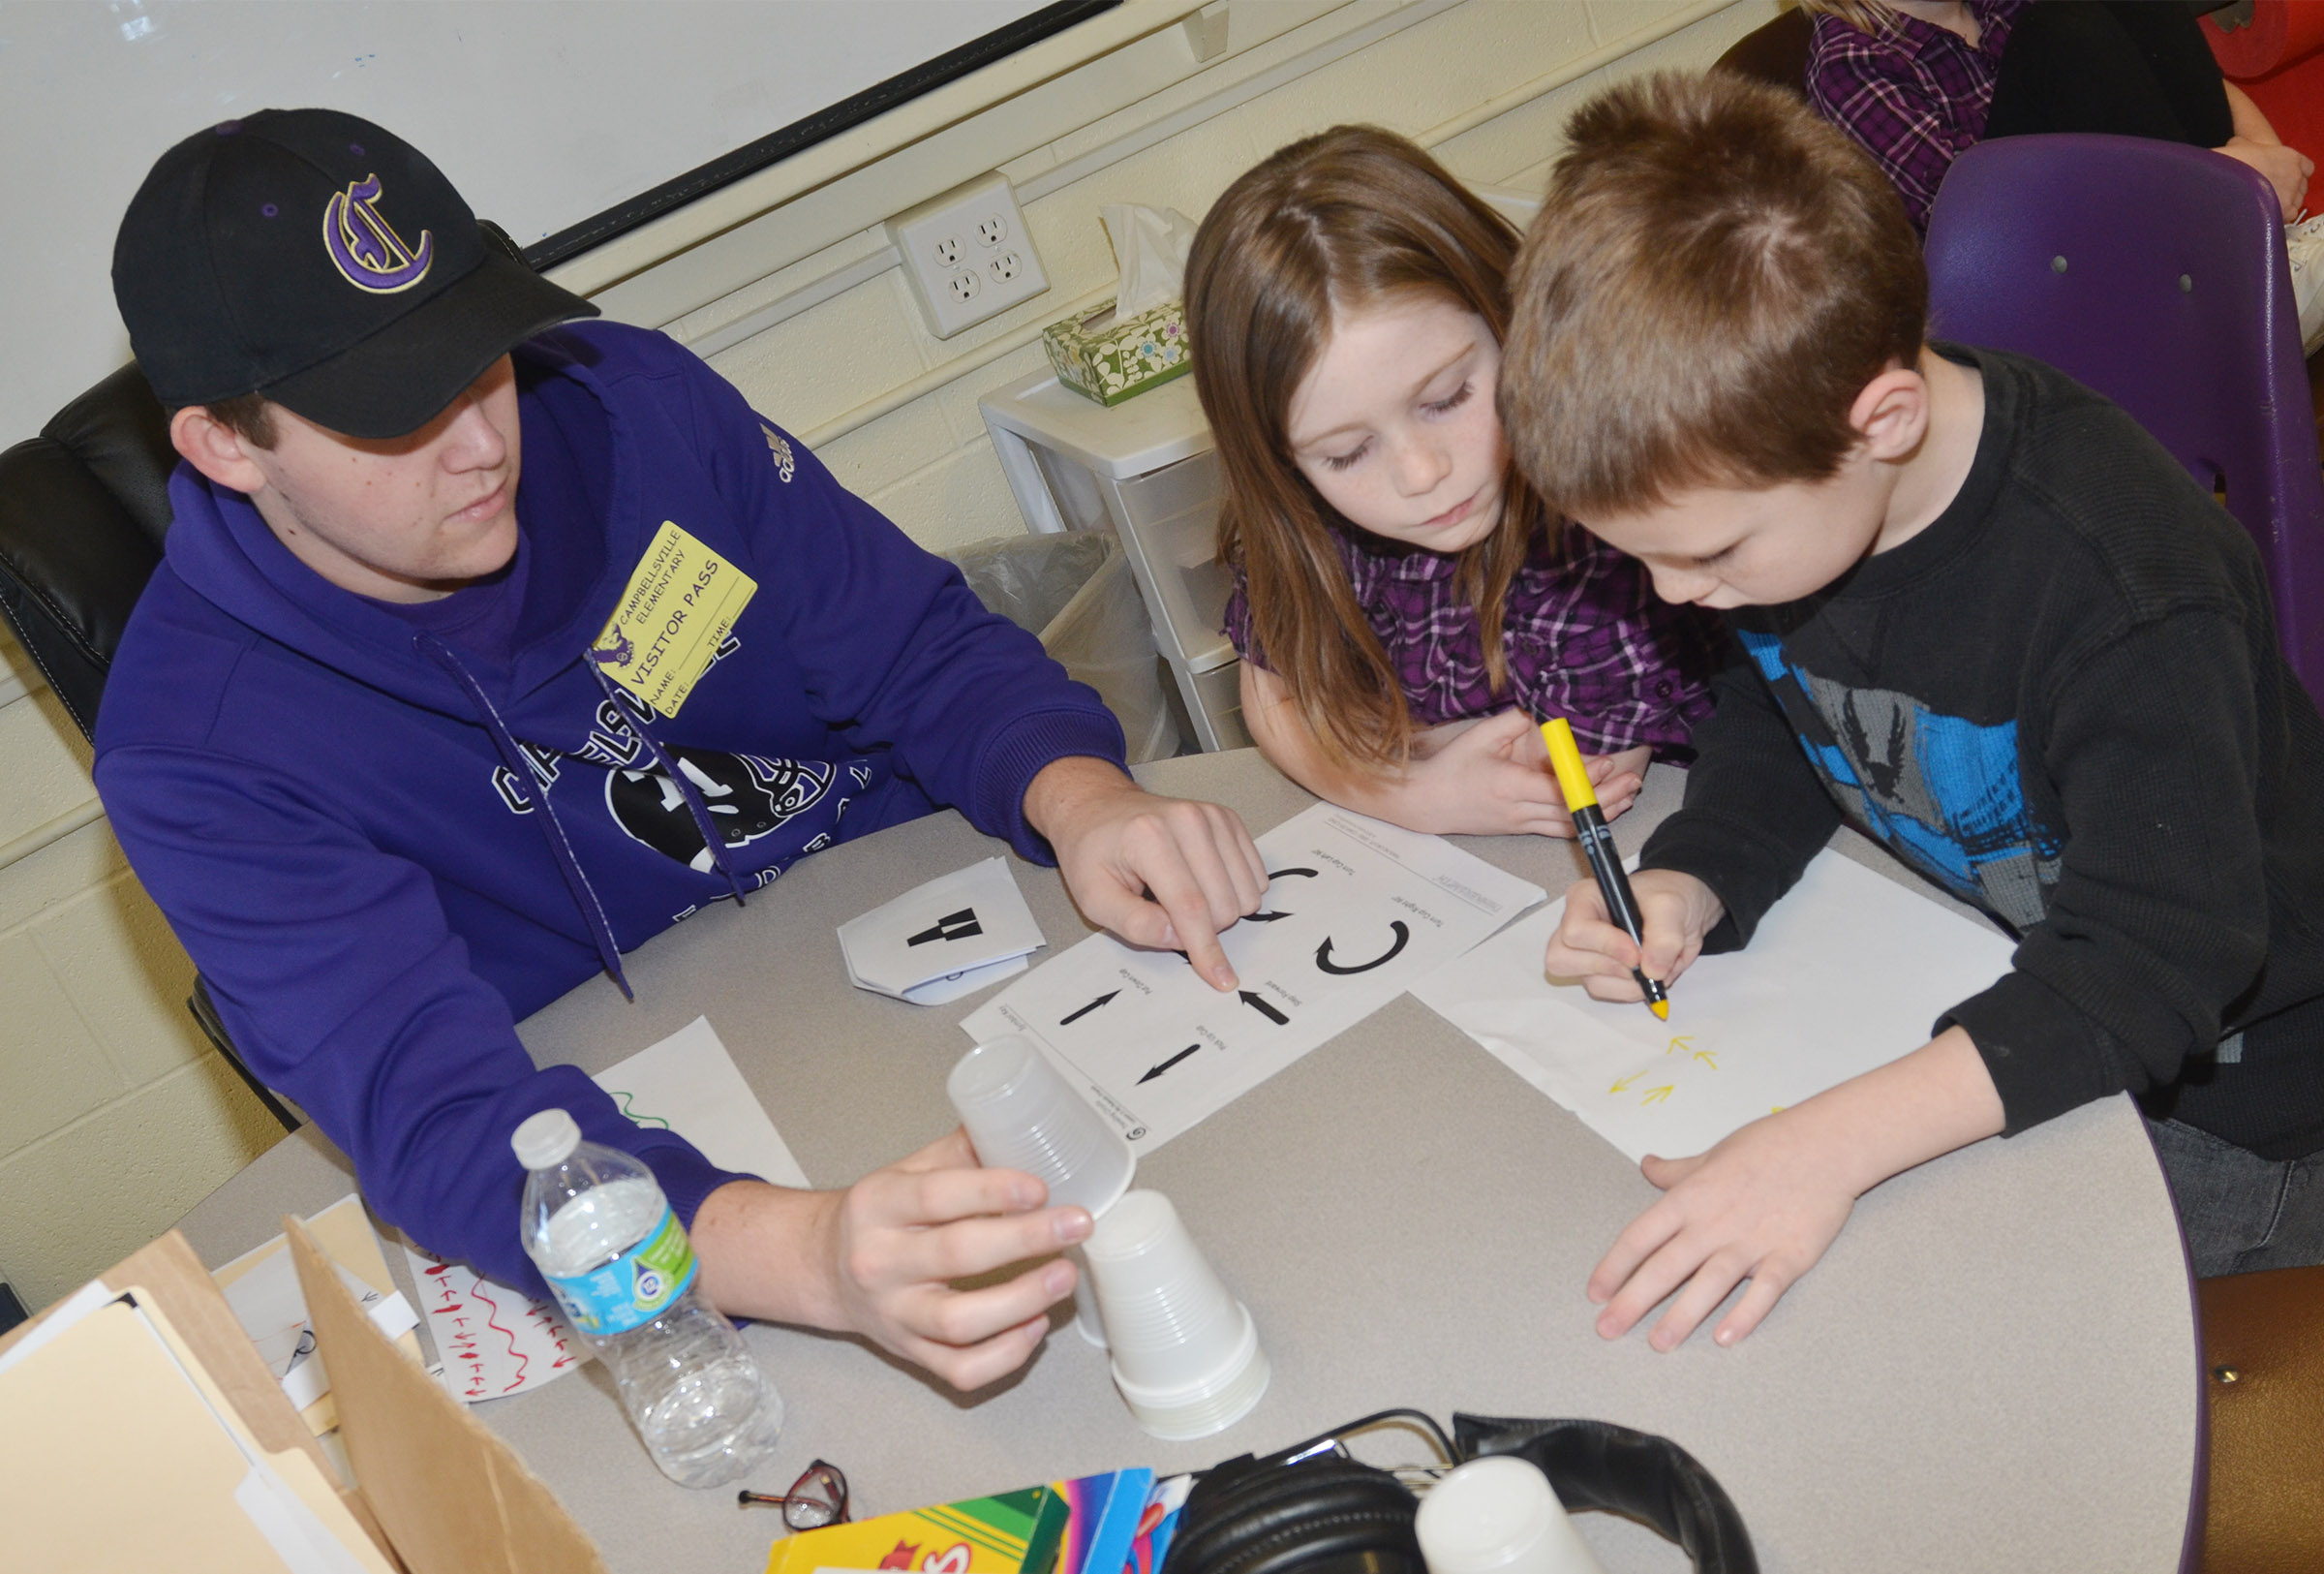 CHS senior Jared Brewster teaches CES first-graders Izzy Brunelle, at left, and James Brunner about computer coding.